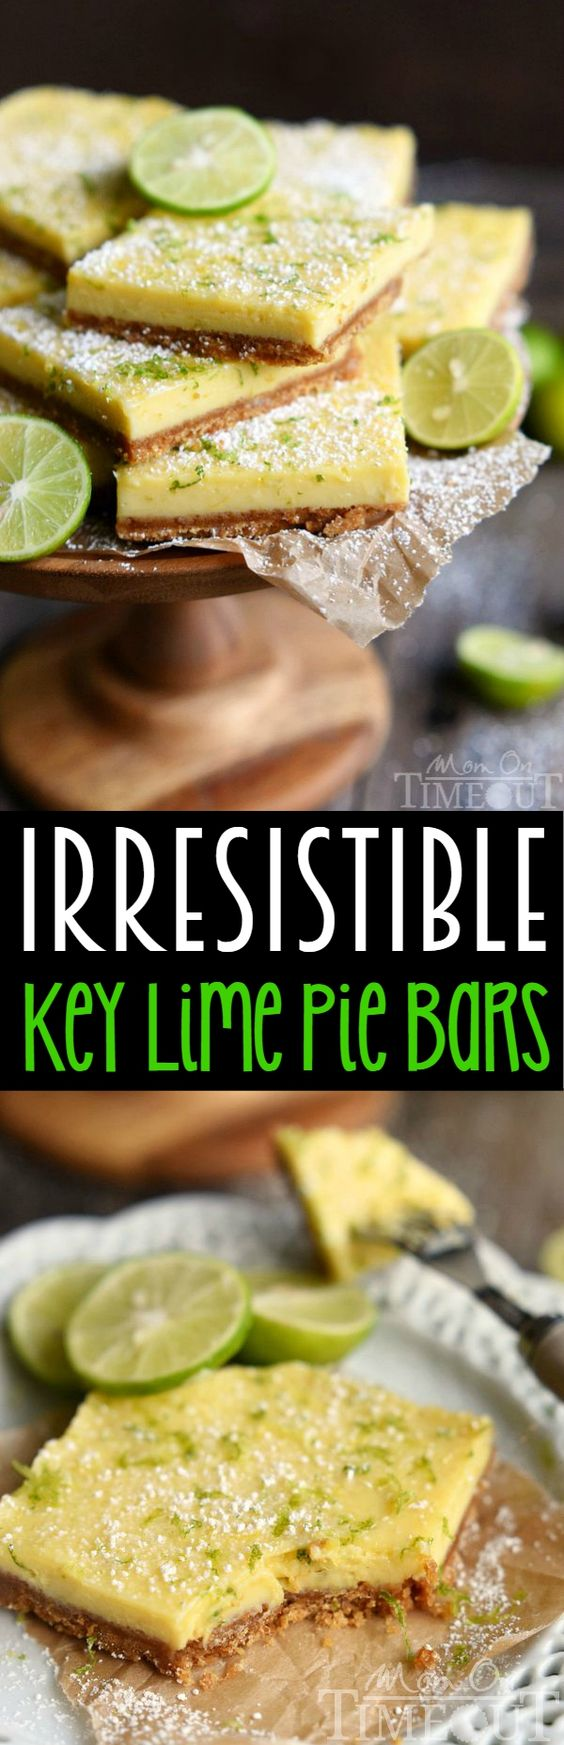 These Irresistible Key Lime Pie Bars are just that - IRRESISTIBLE! Made with the perfect graham cracker crust and fresh key lime juice, these bars are bound to become your new favorite dessert!